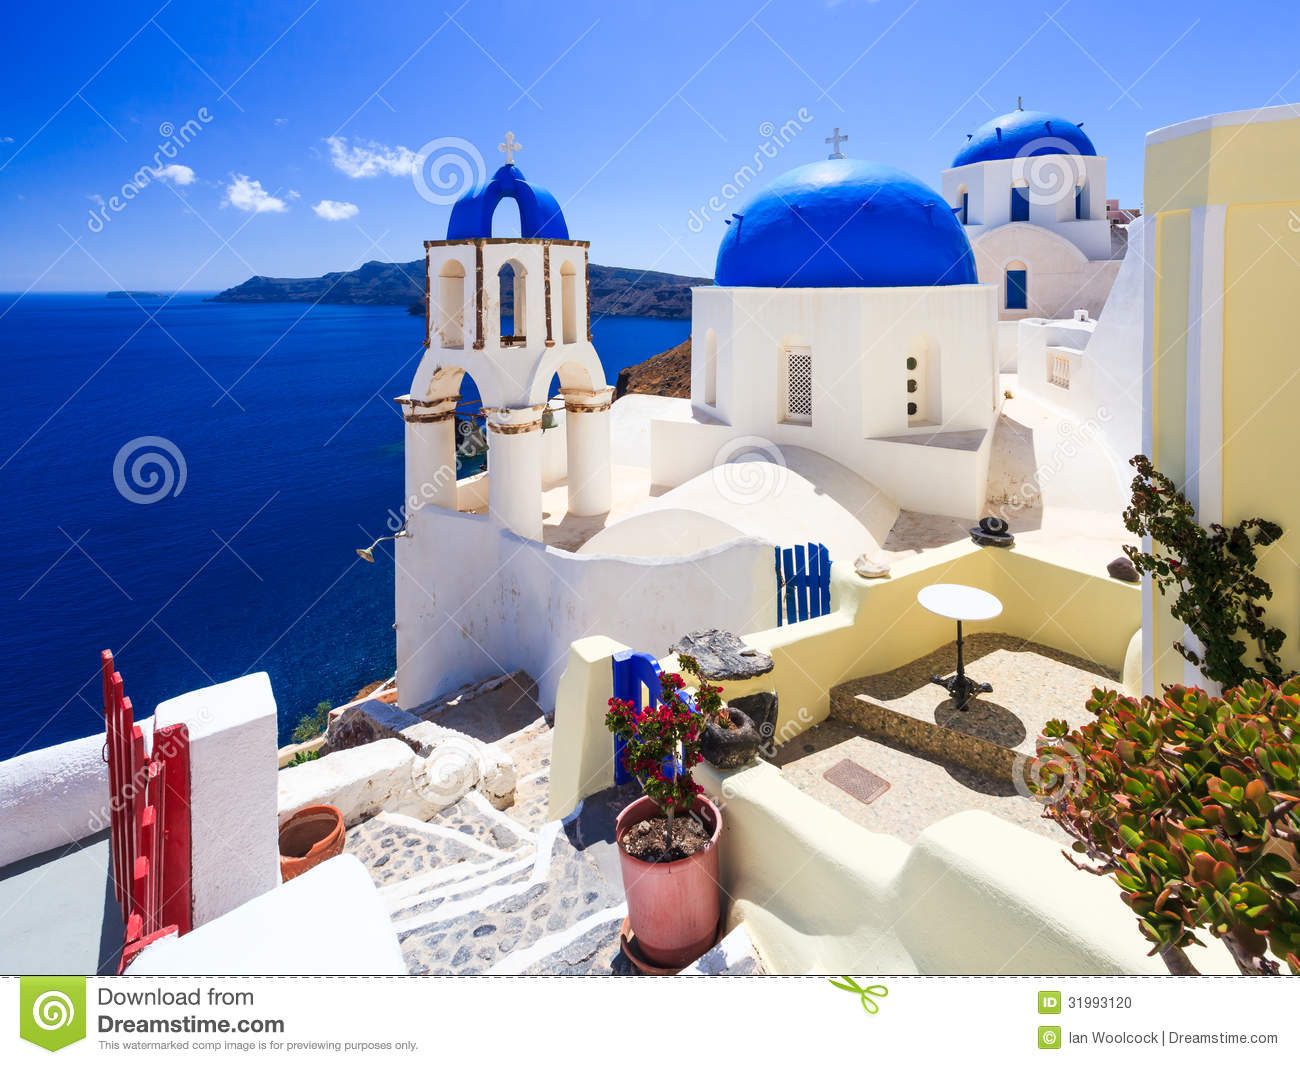 Blue Dome Churches Oia Santorini Stock Photo Image 31993120